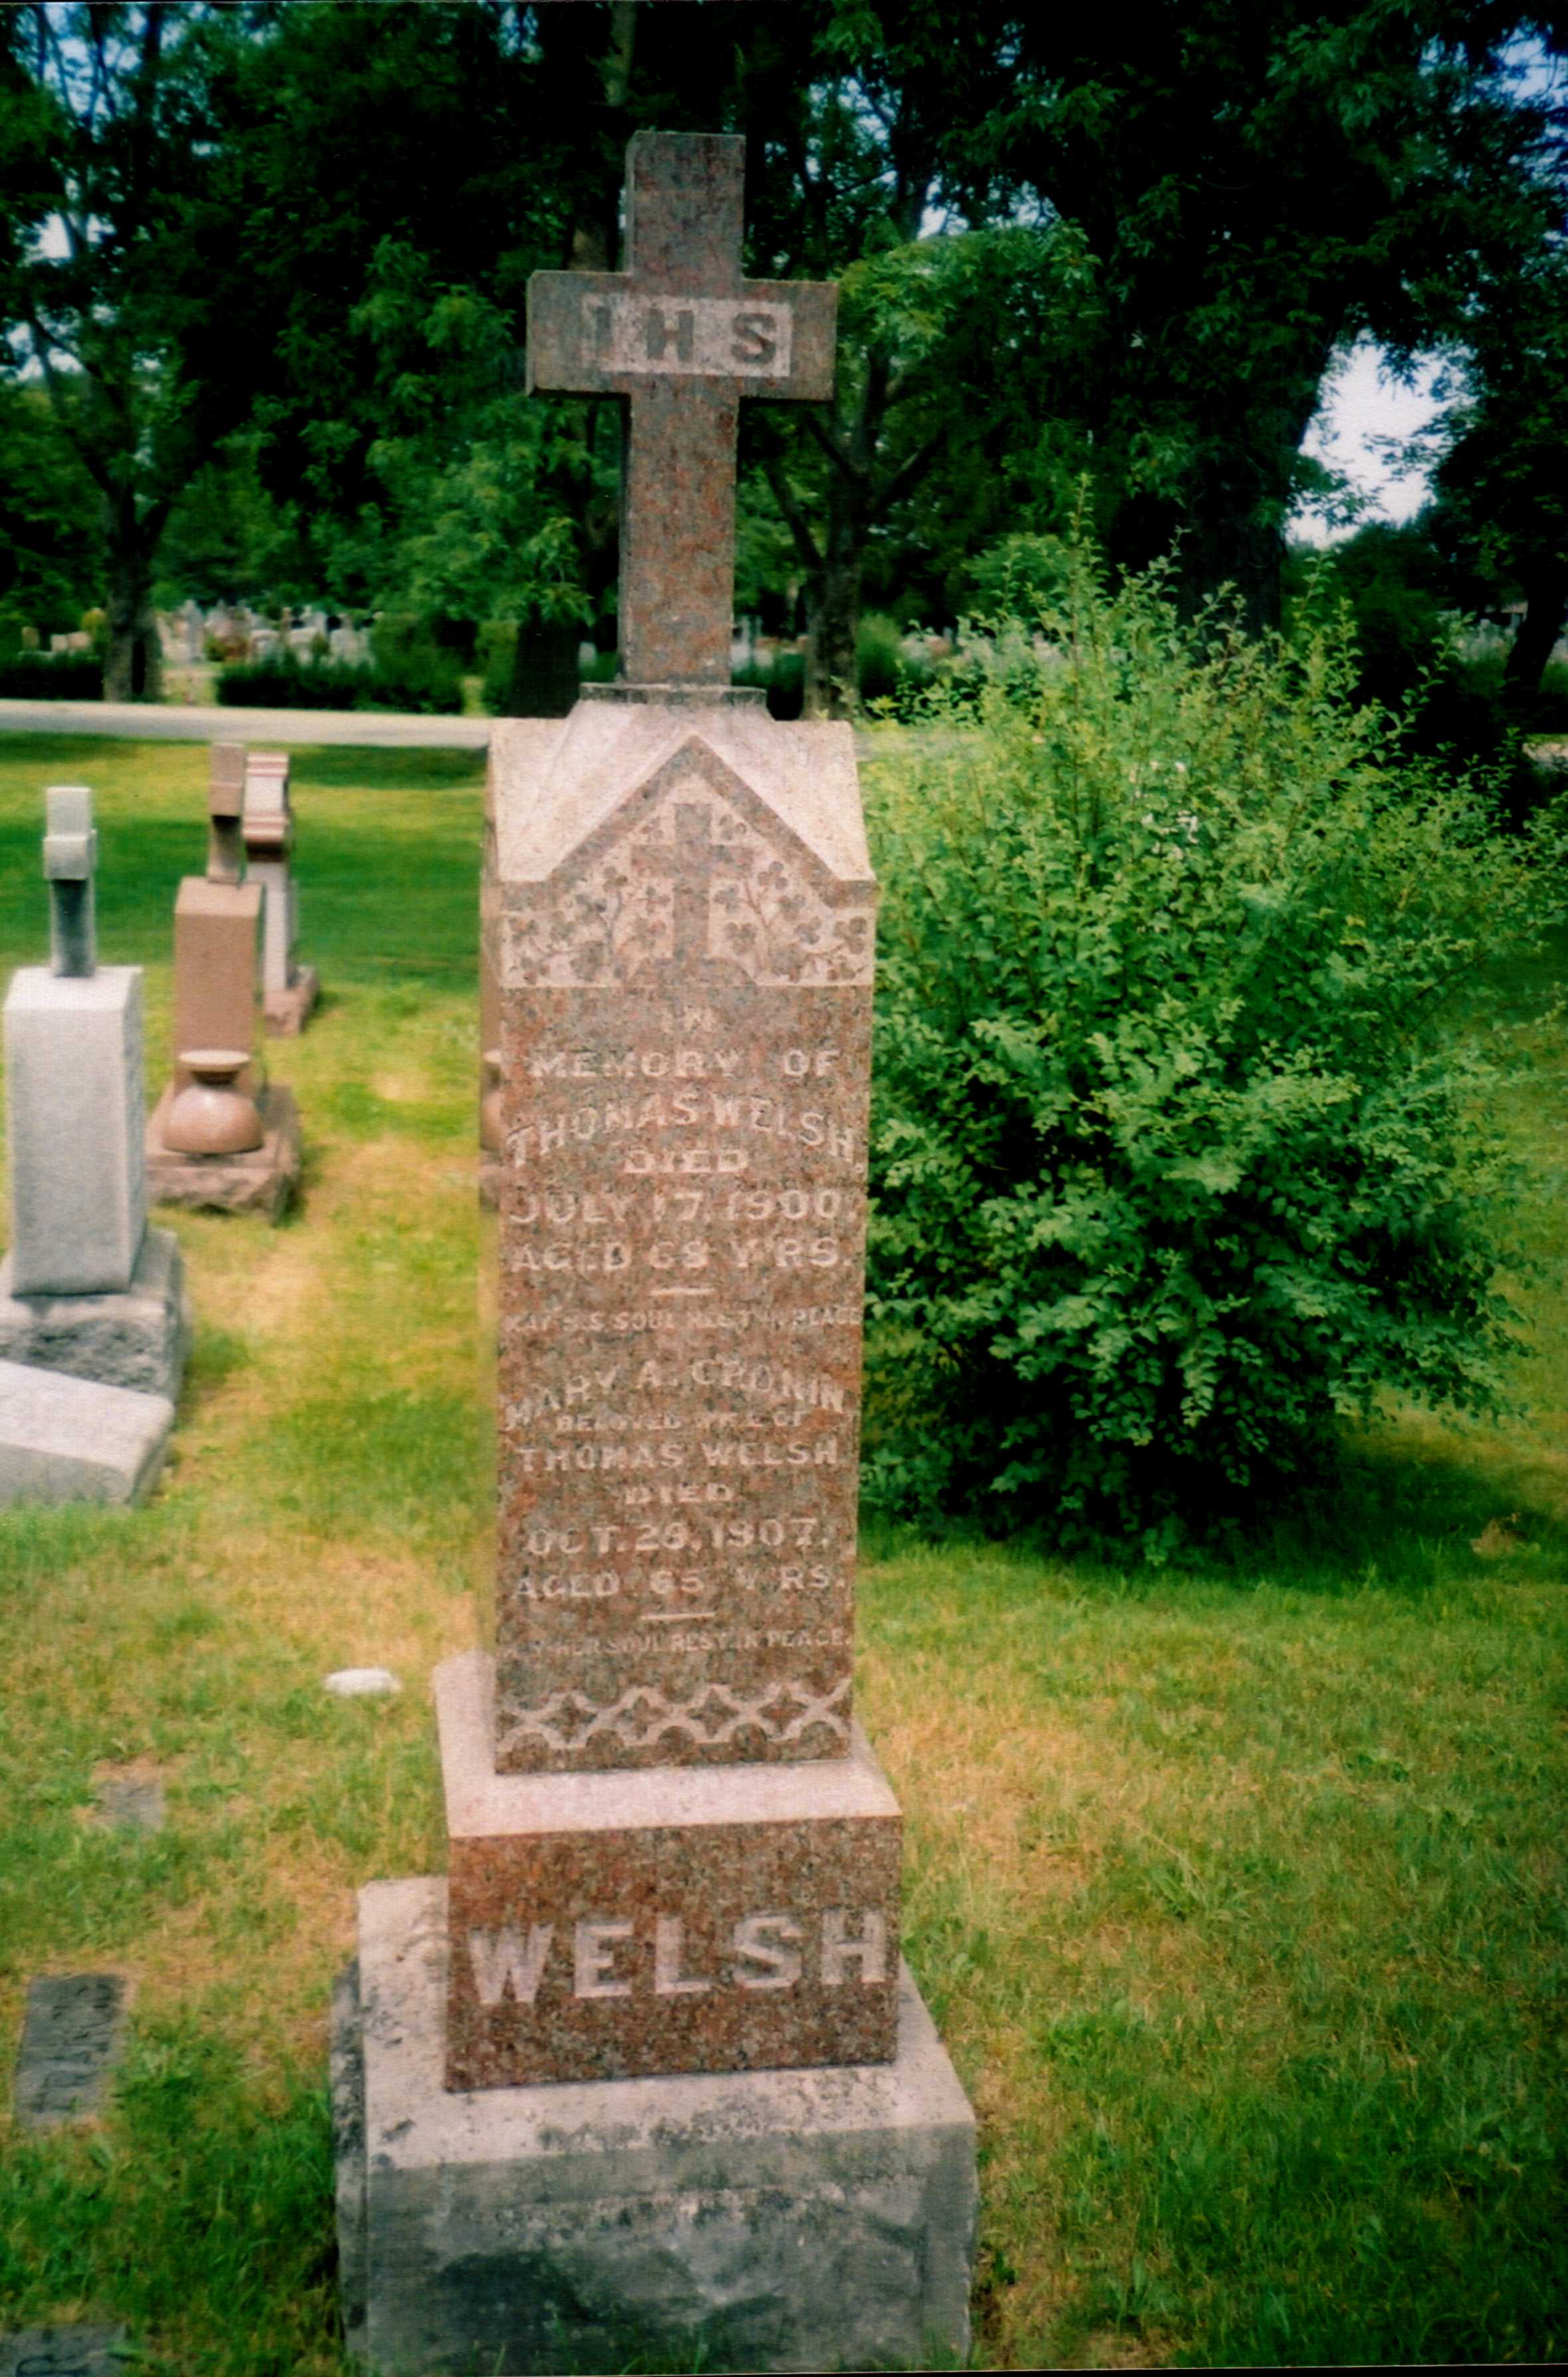 Thomas and Mary Ann Welsh grave marker